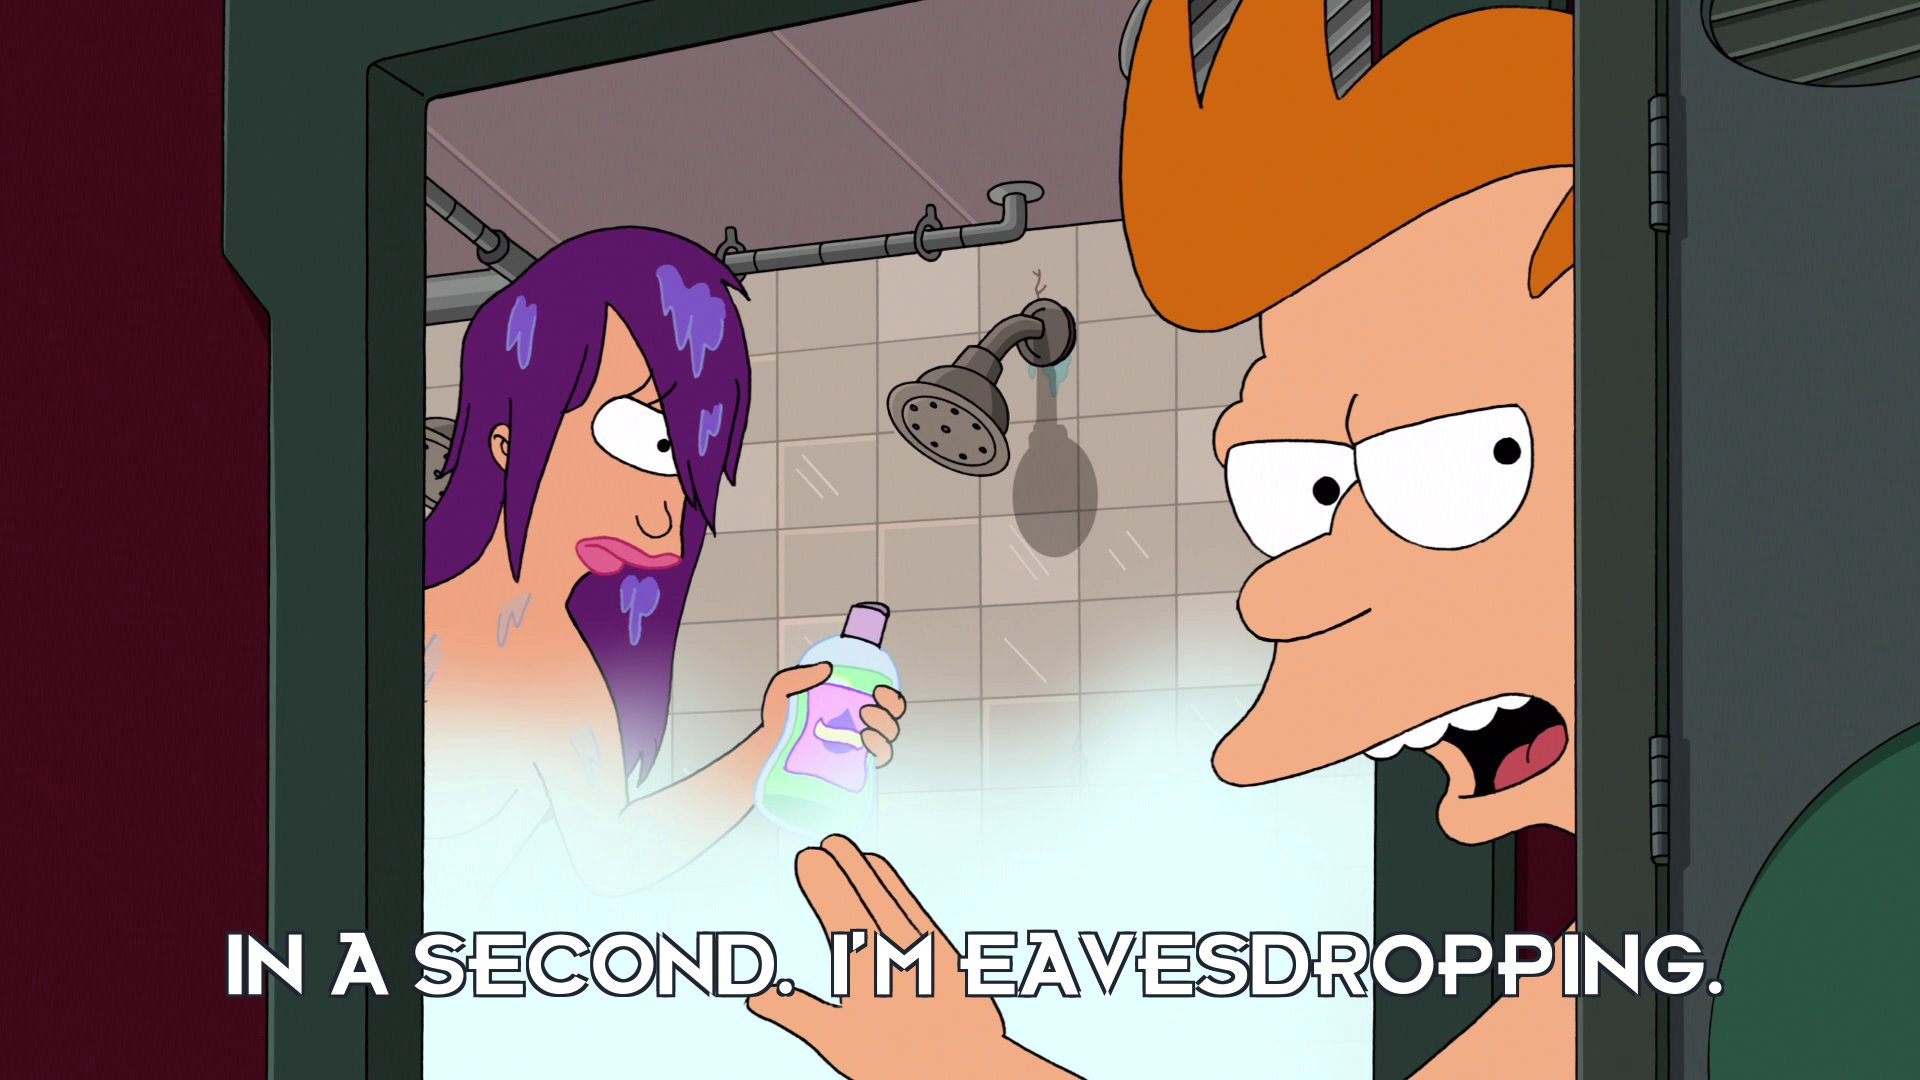 Philip J Fry: In a second. I'm eavesdropping.